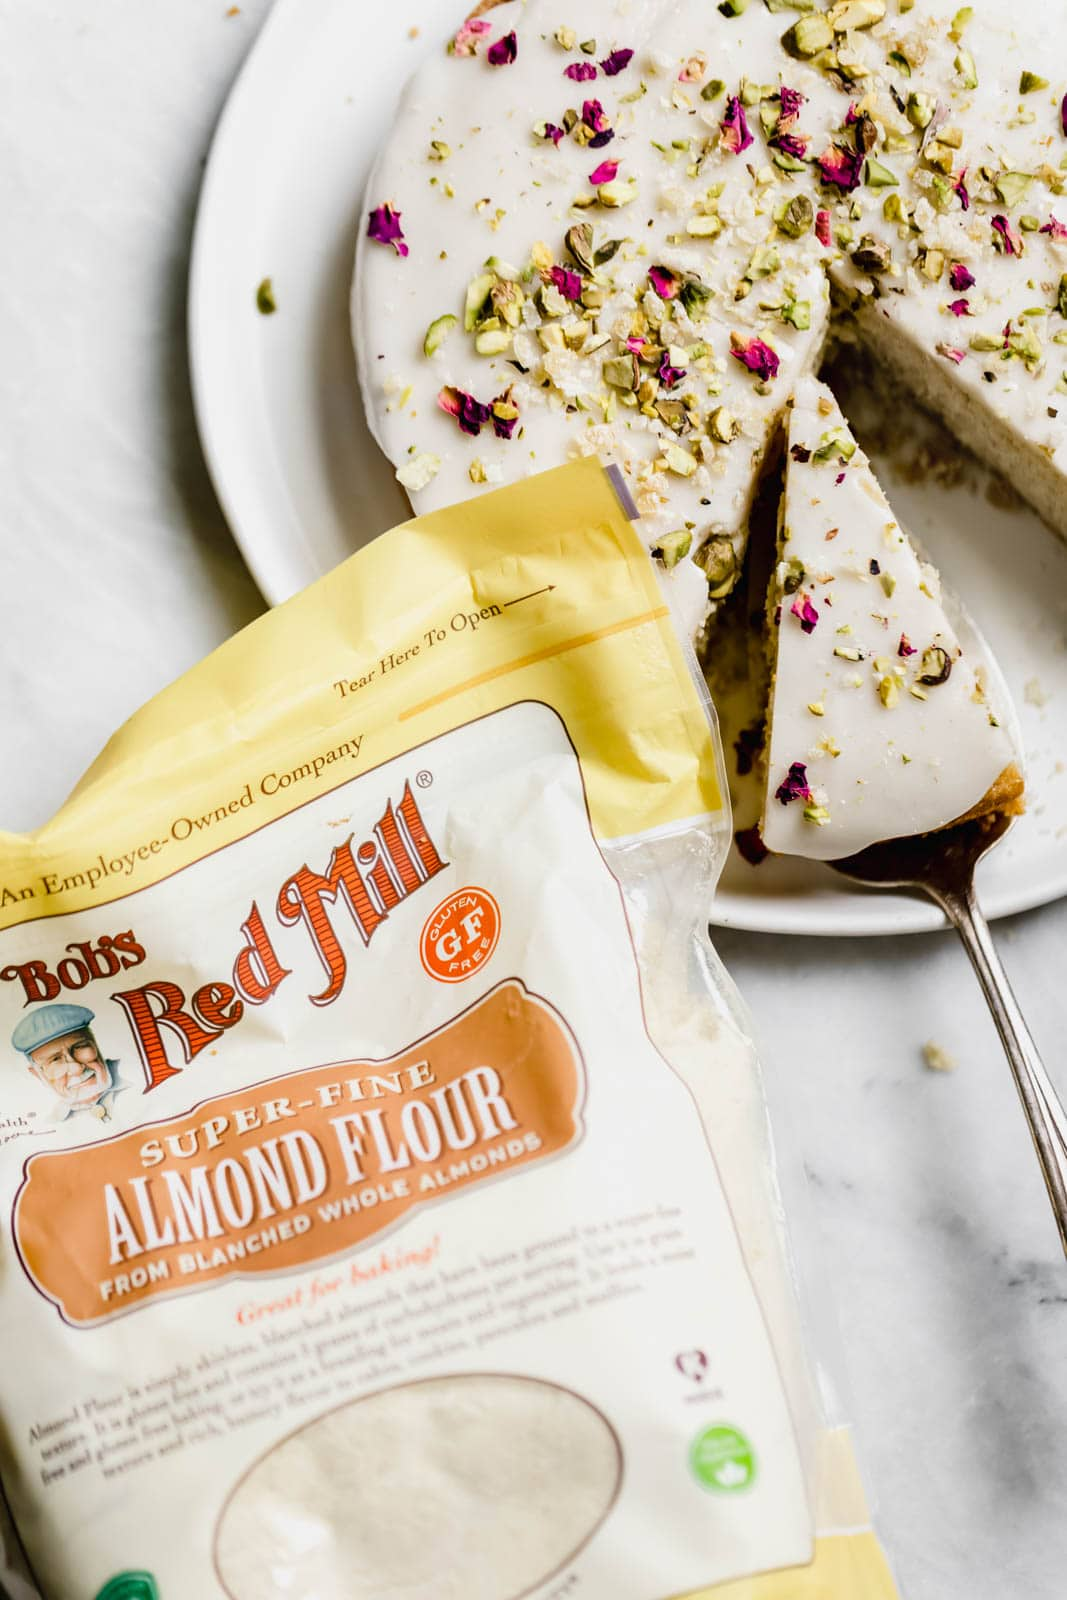 almond and rose cake next to a bag of almond flour